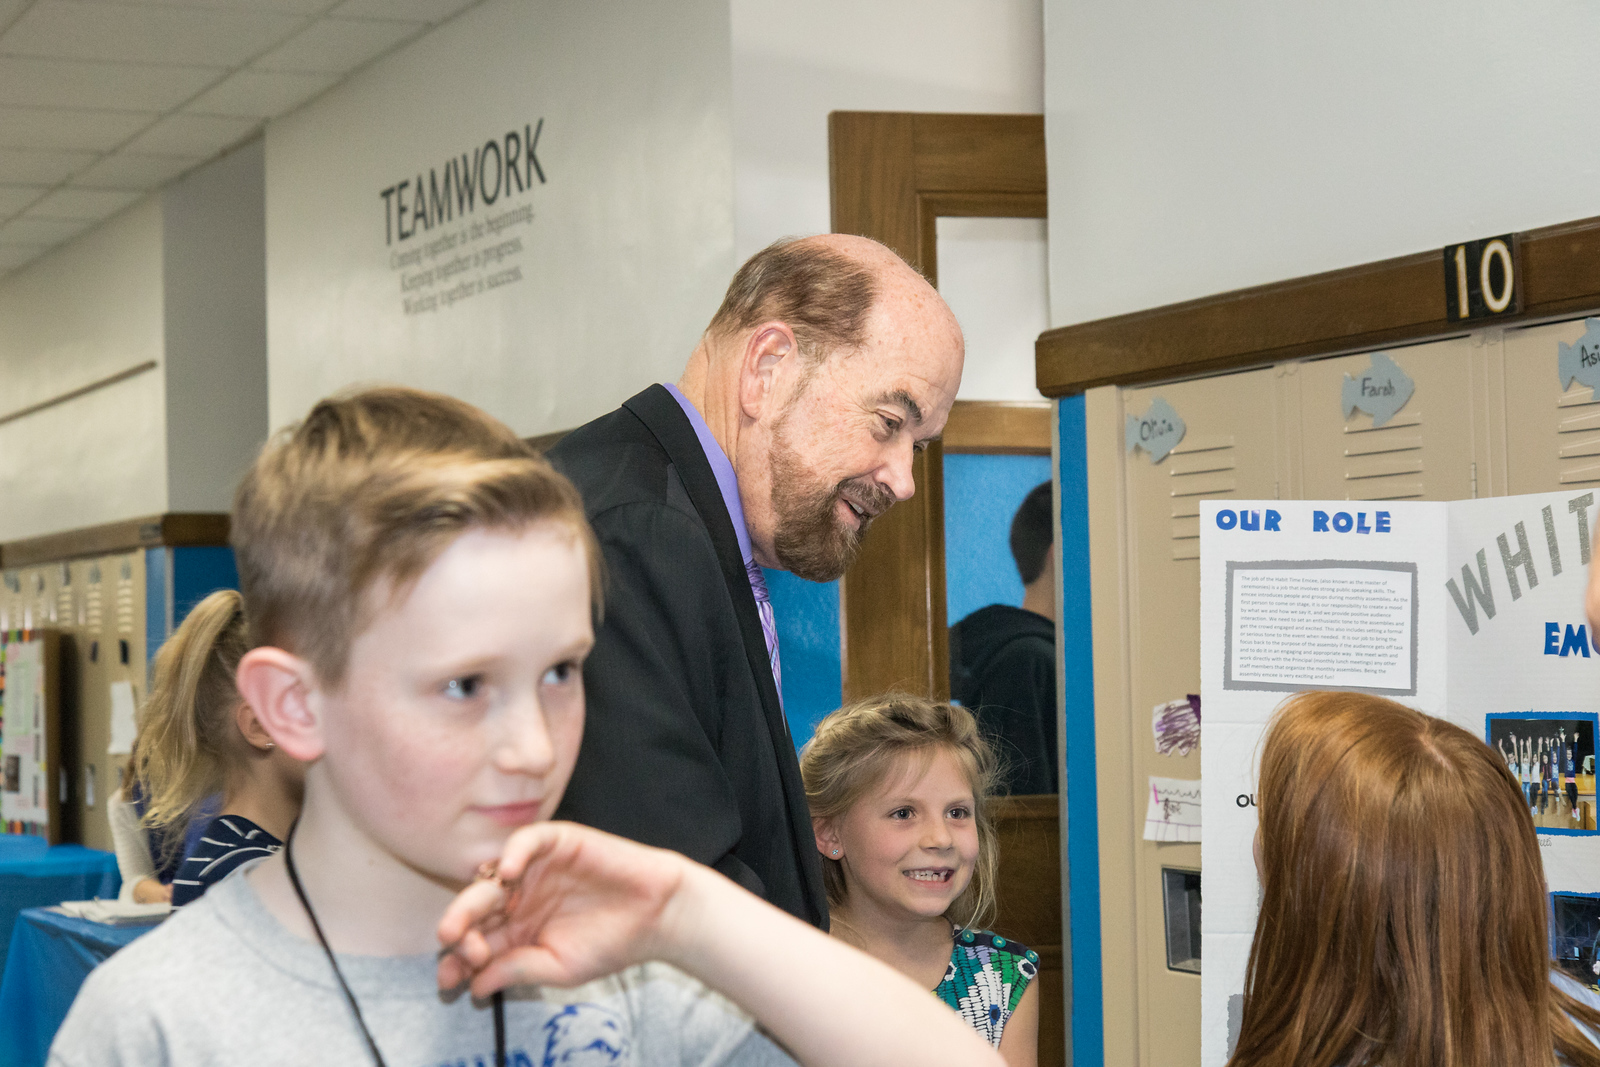 Students were excited to explain their leadership roles to Mayor John B. O'Reilly, Jr. Photo by Debbie Malyn.